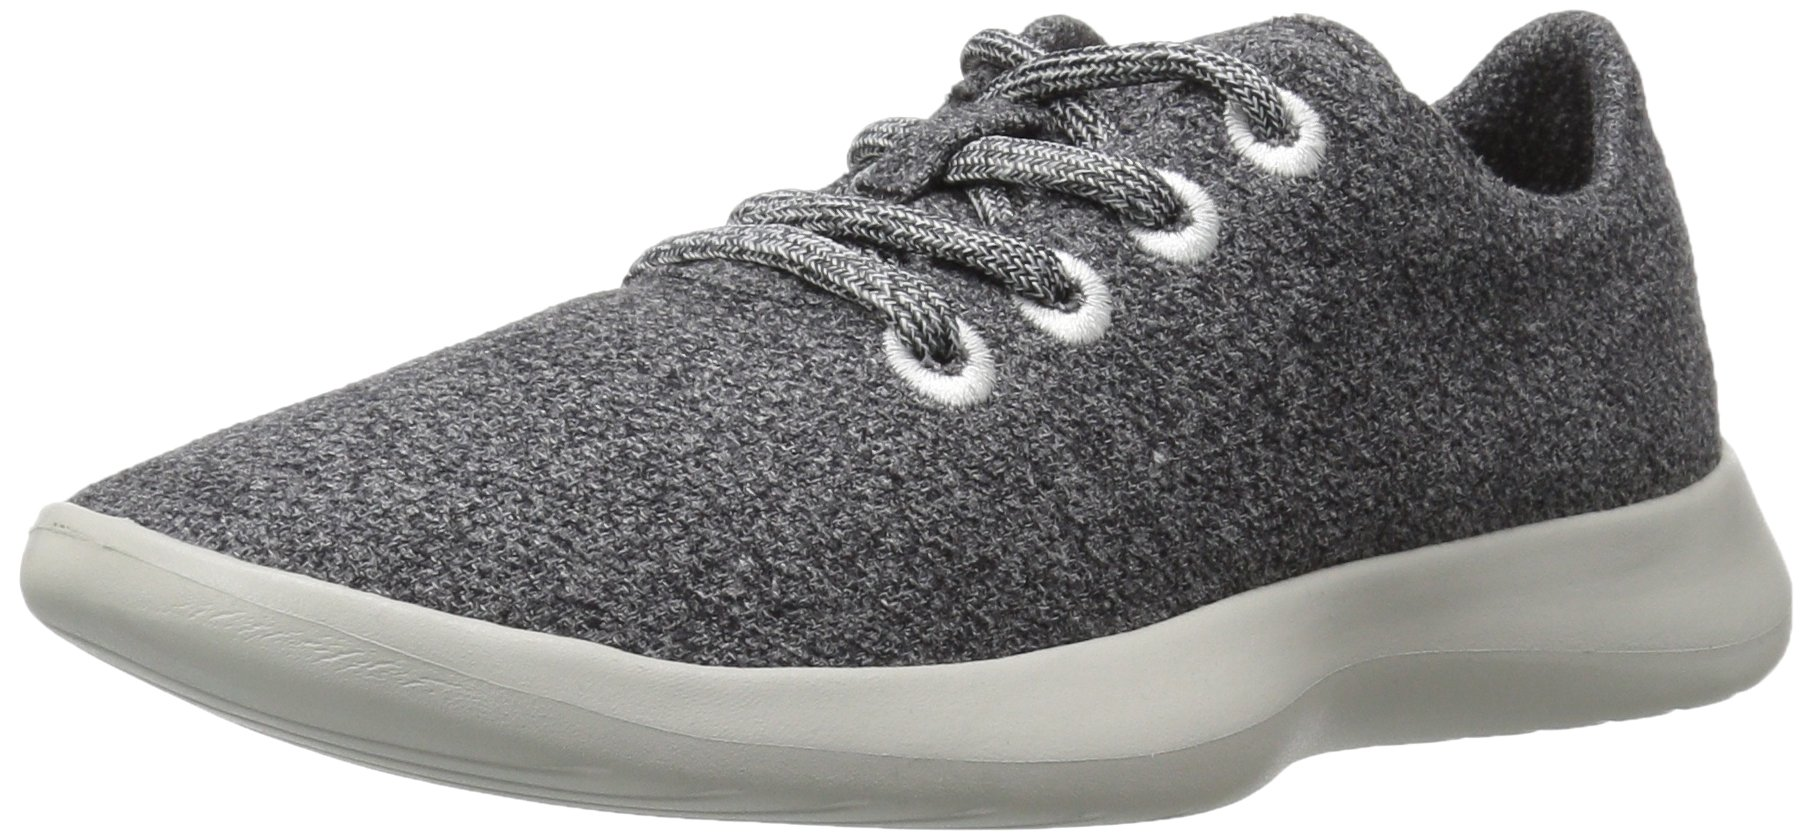 STEVEN by Steve Madden Women's Traveler Walking Shoe, Grey, 9 M US